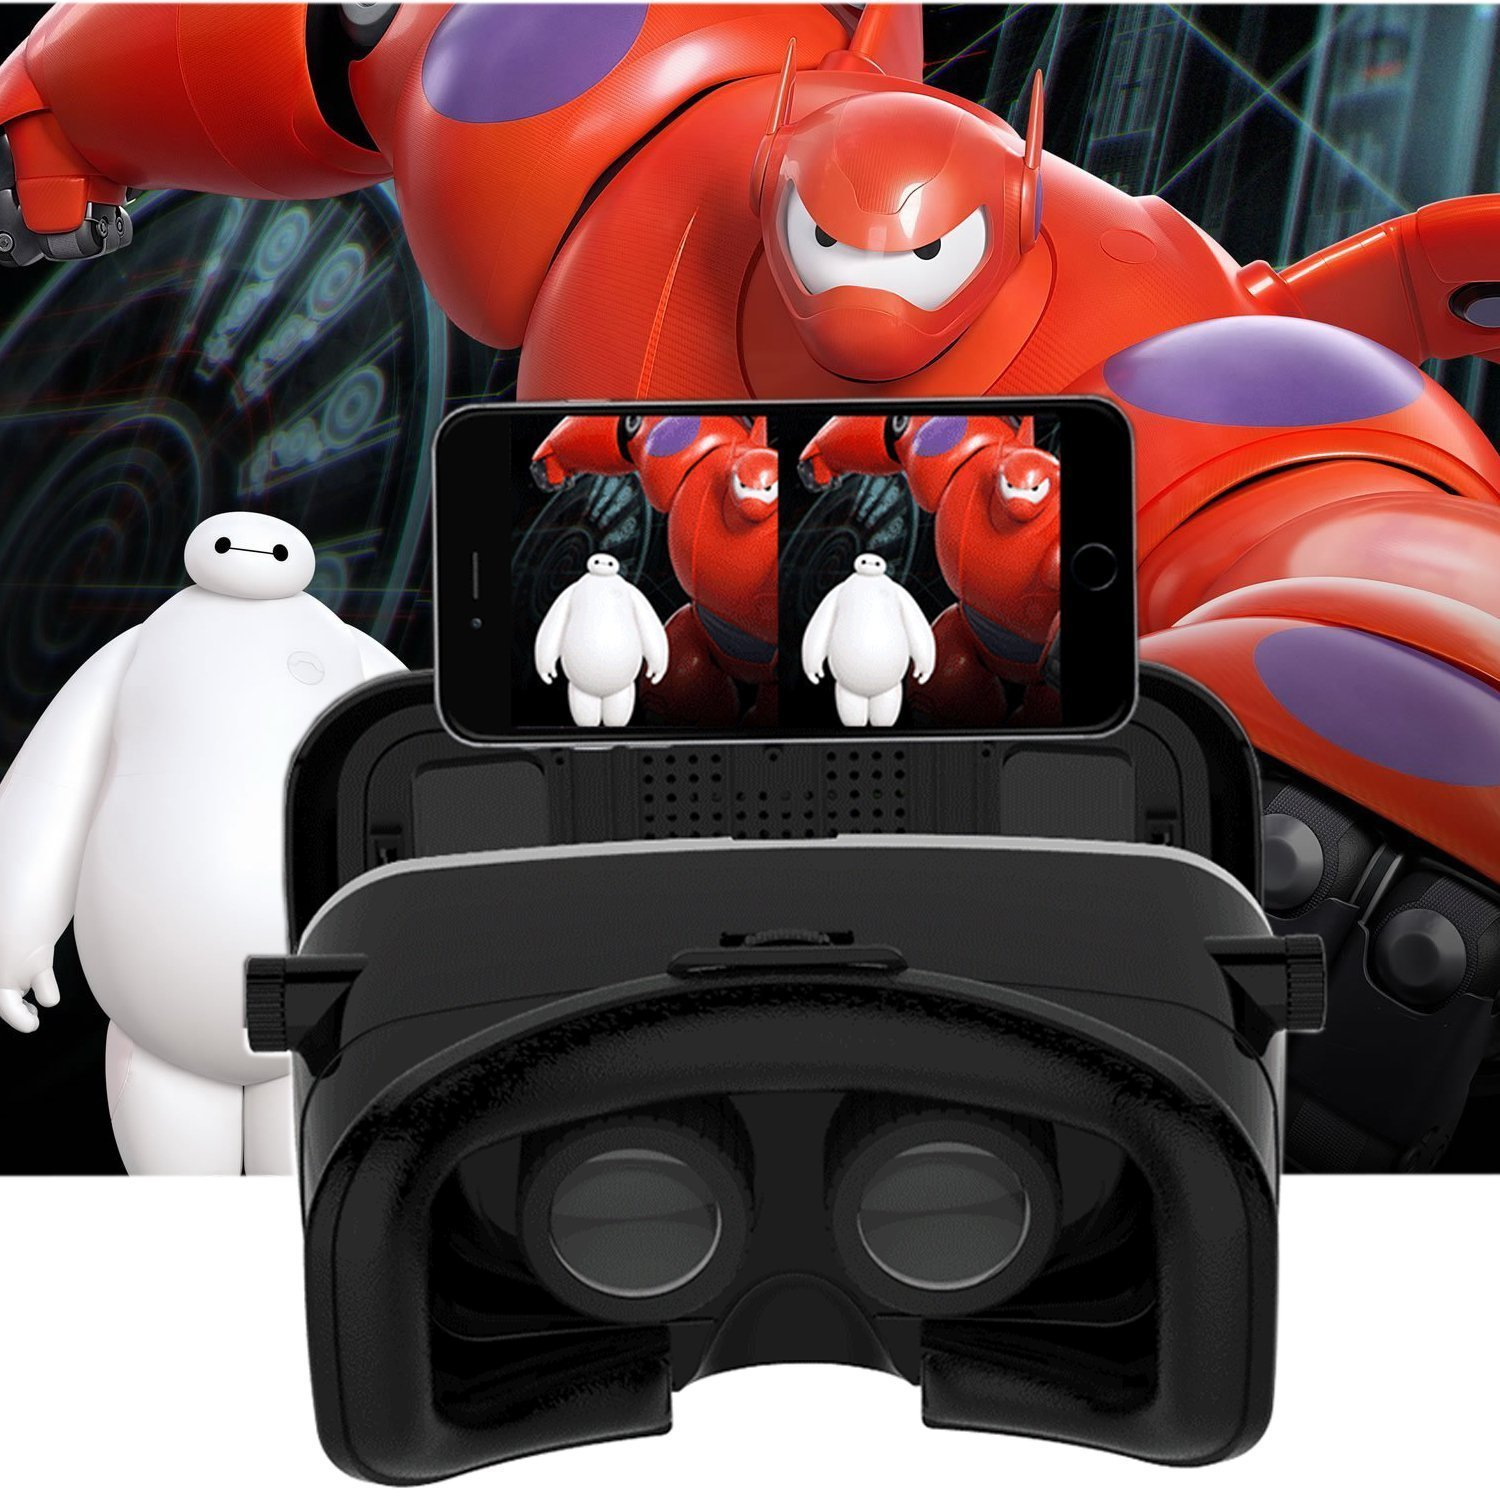 """G4 TECH VR SHINECON Case Google Cardboard VR Box 3DVirtual Reality Headset Video Movie Game Glasses for Android & IOS Smartphones(4.7""""-6"""") (VR SHINECON)"""